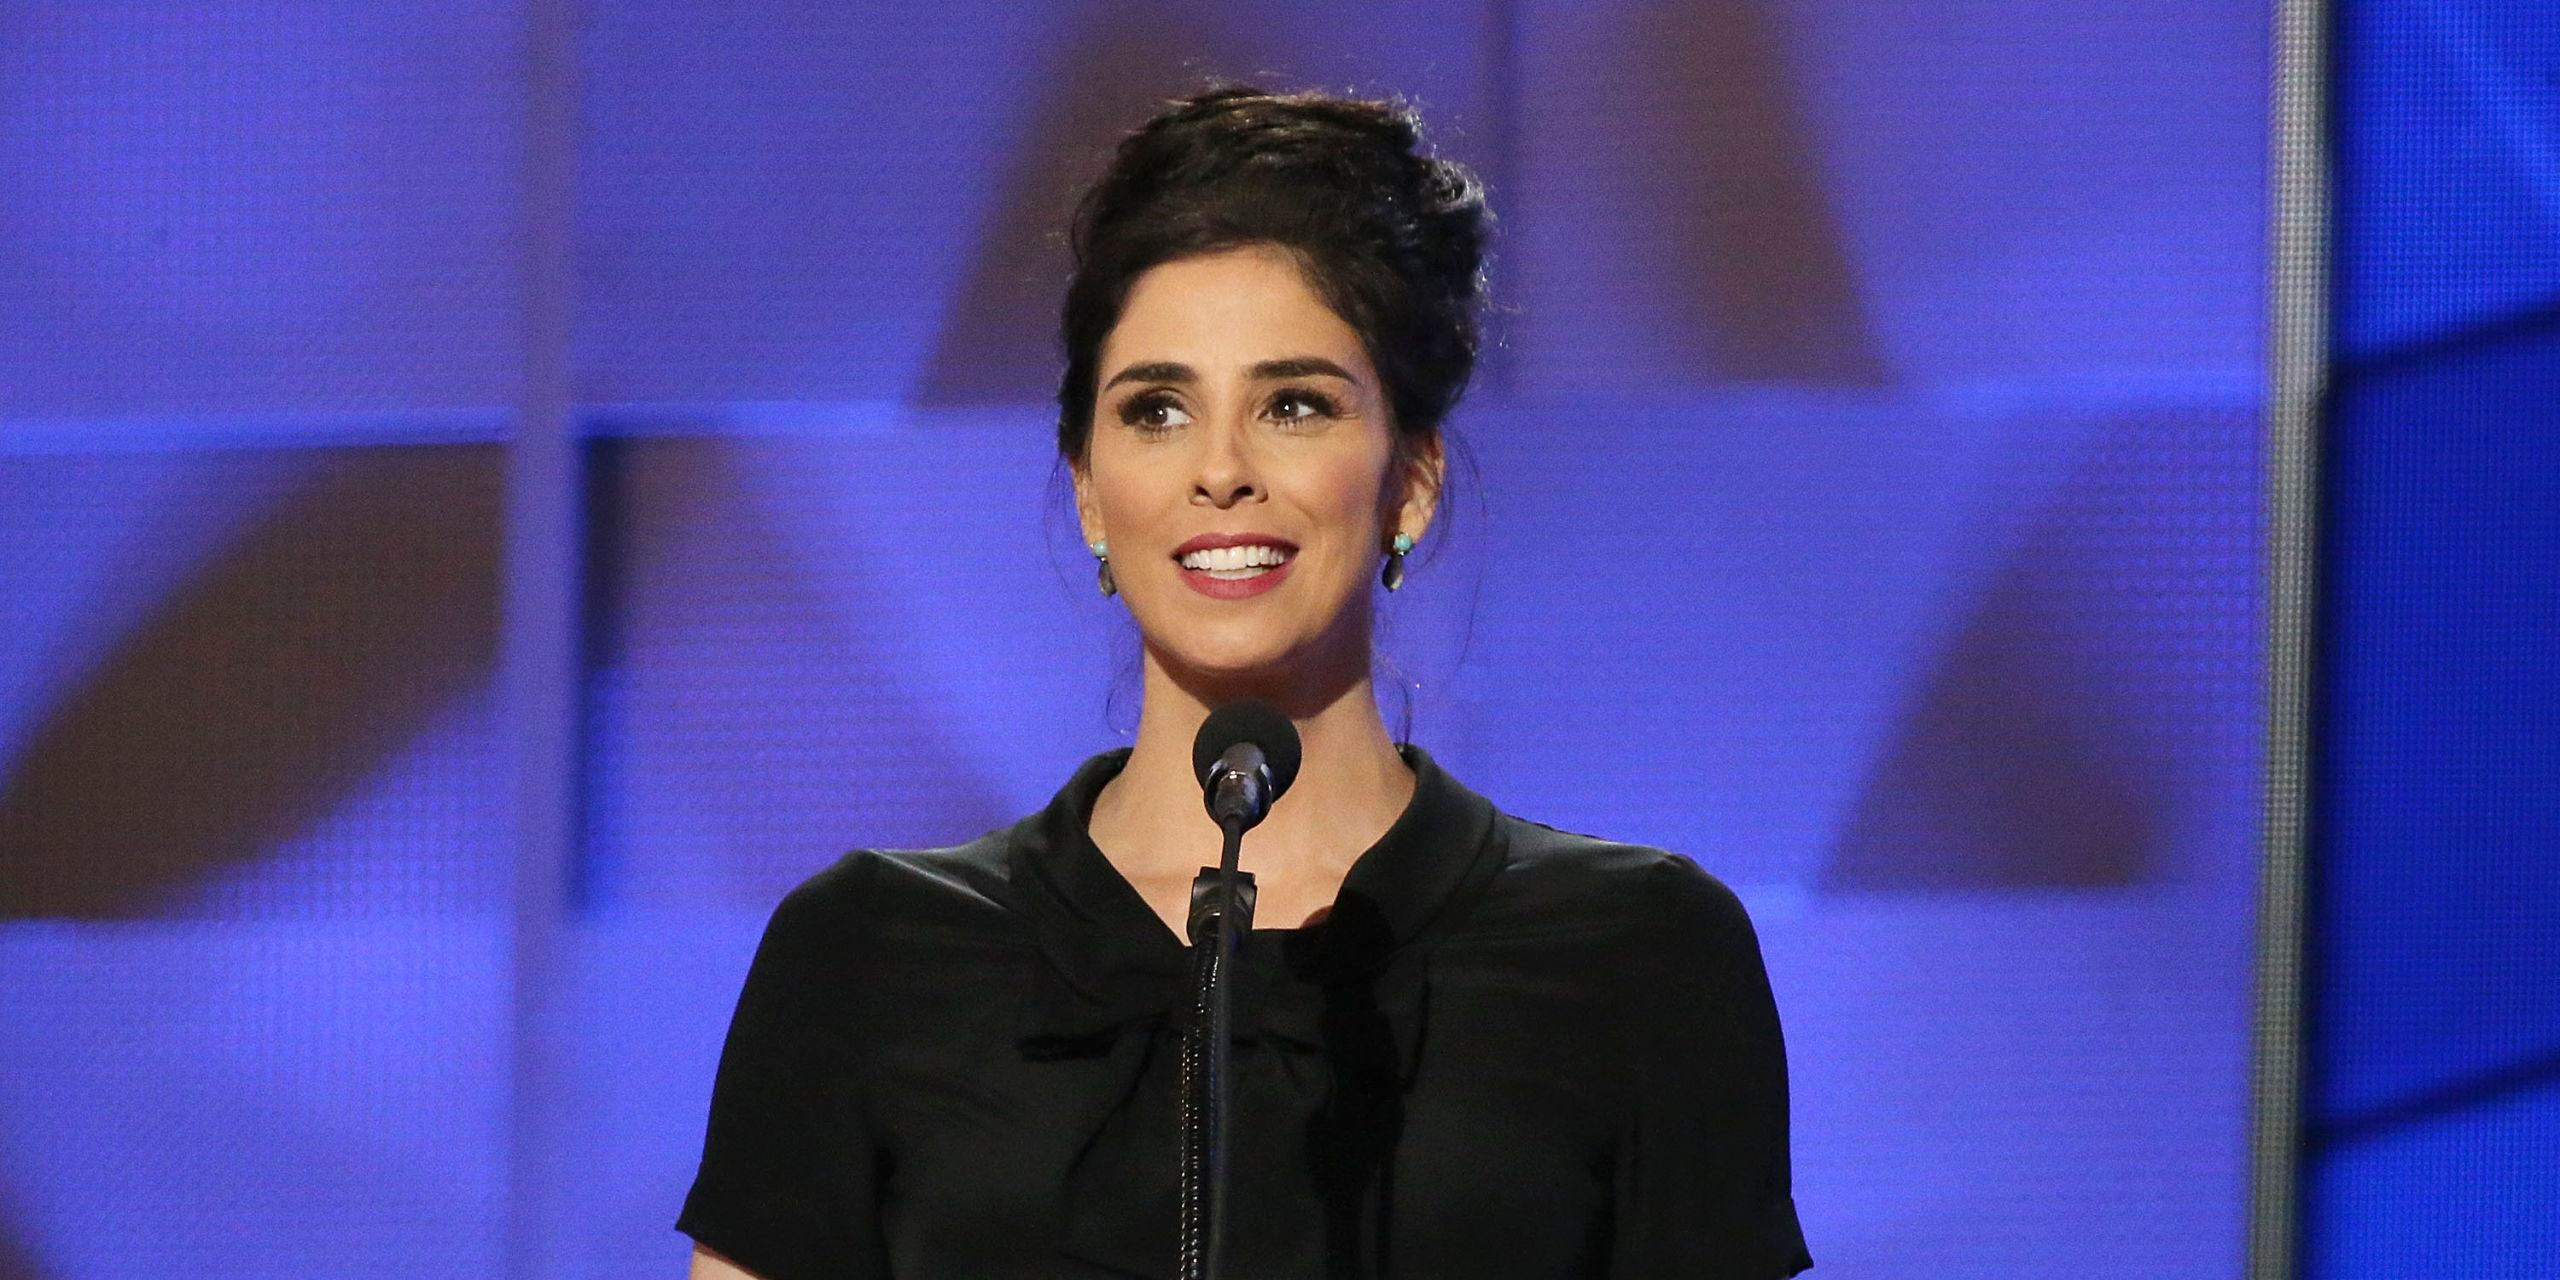 Hackers Took Over Sarah Silverman's Twitter and Posted an Anti-Hillary Message